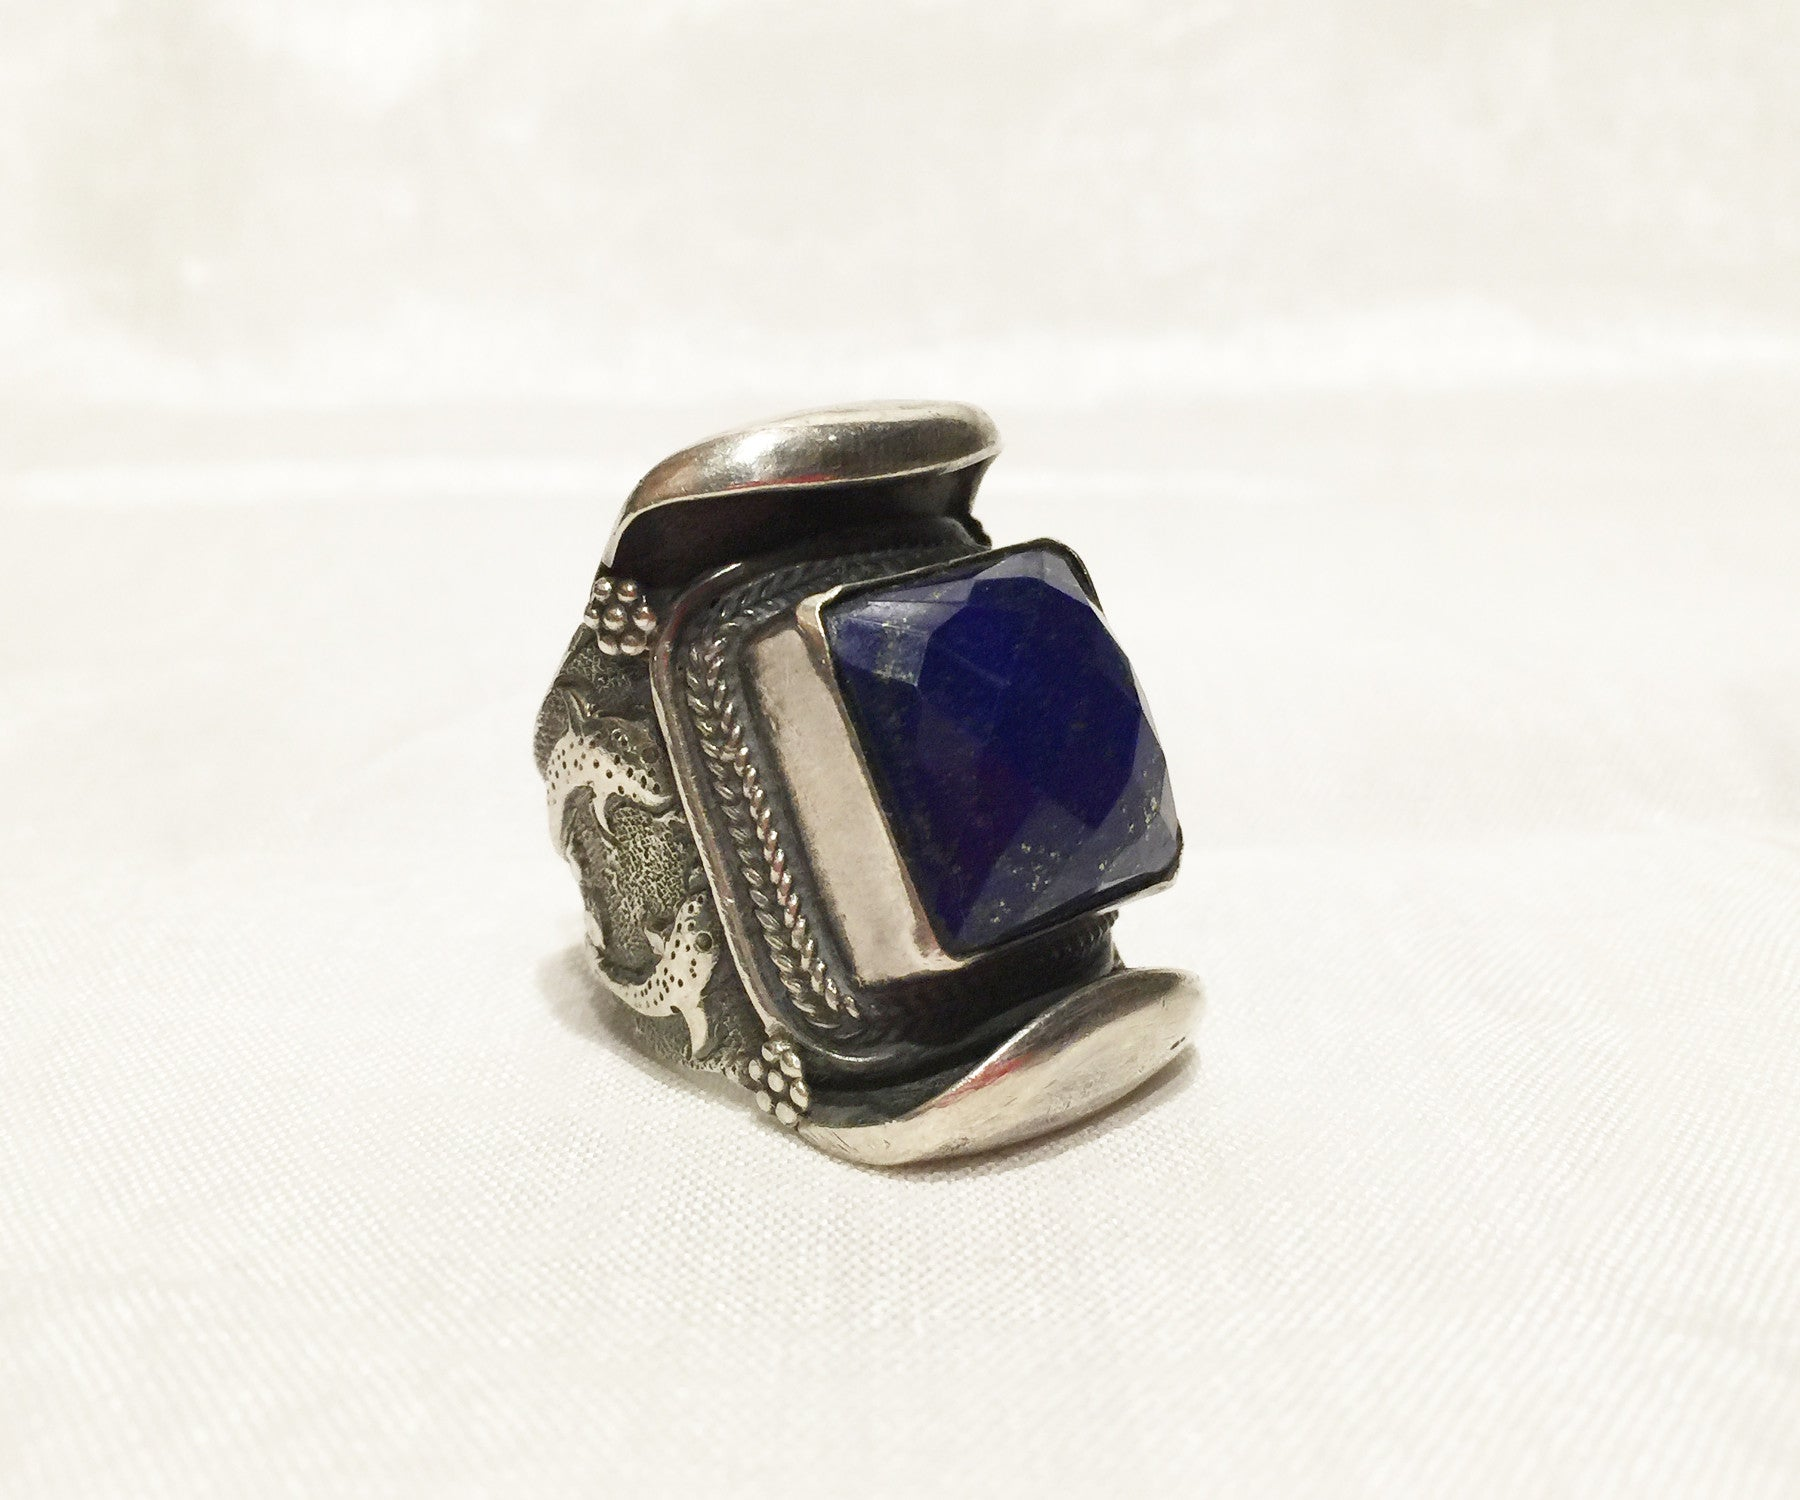 Tibetan Lapis Saddle Ring - Tibet Arts & Healing